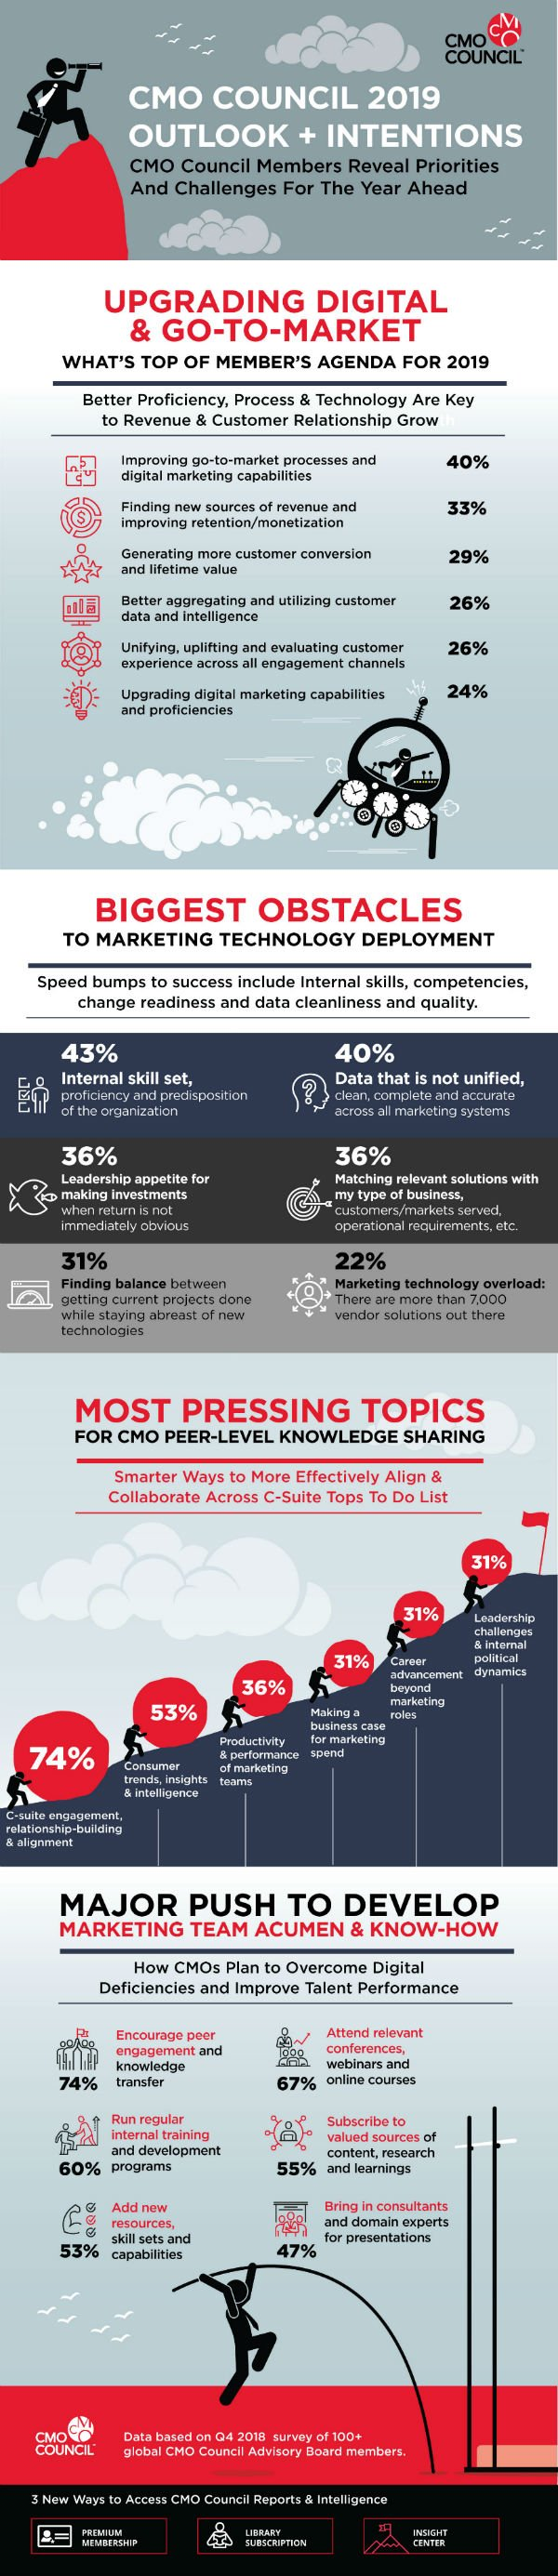 s_The CMO Council pulse check on CMO priorities infographic